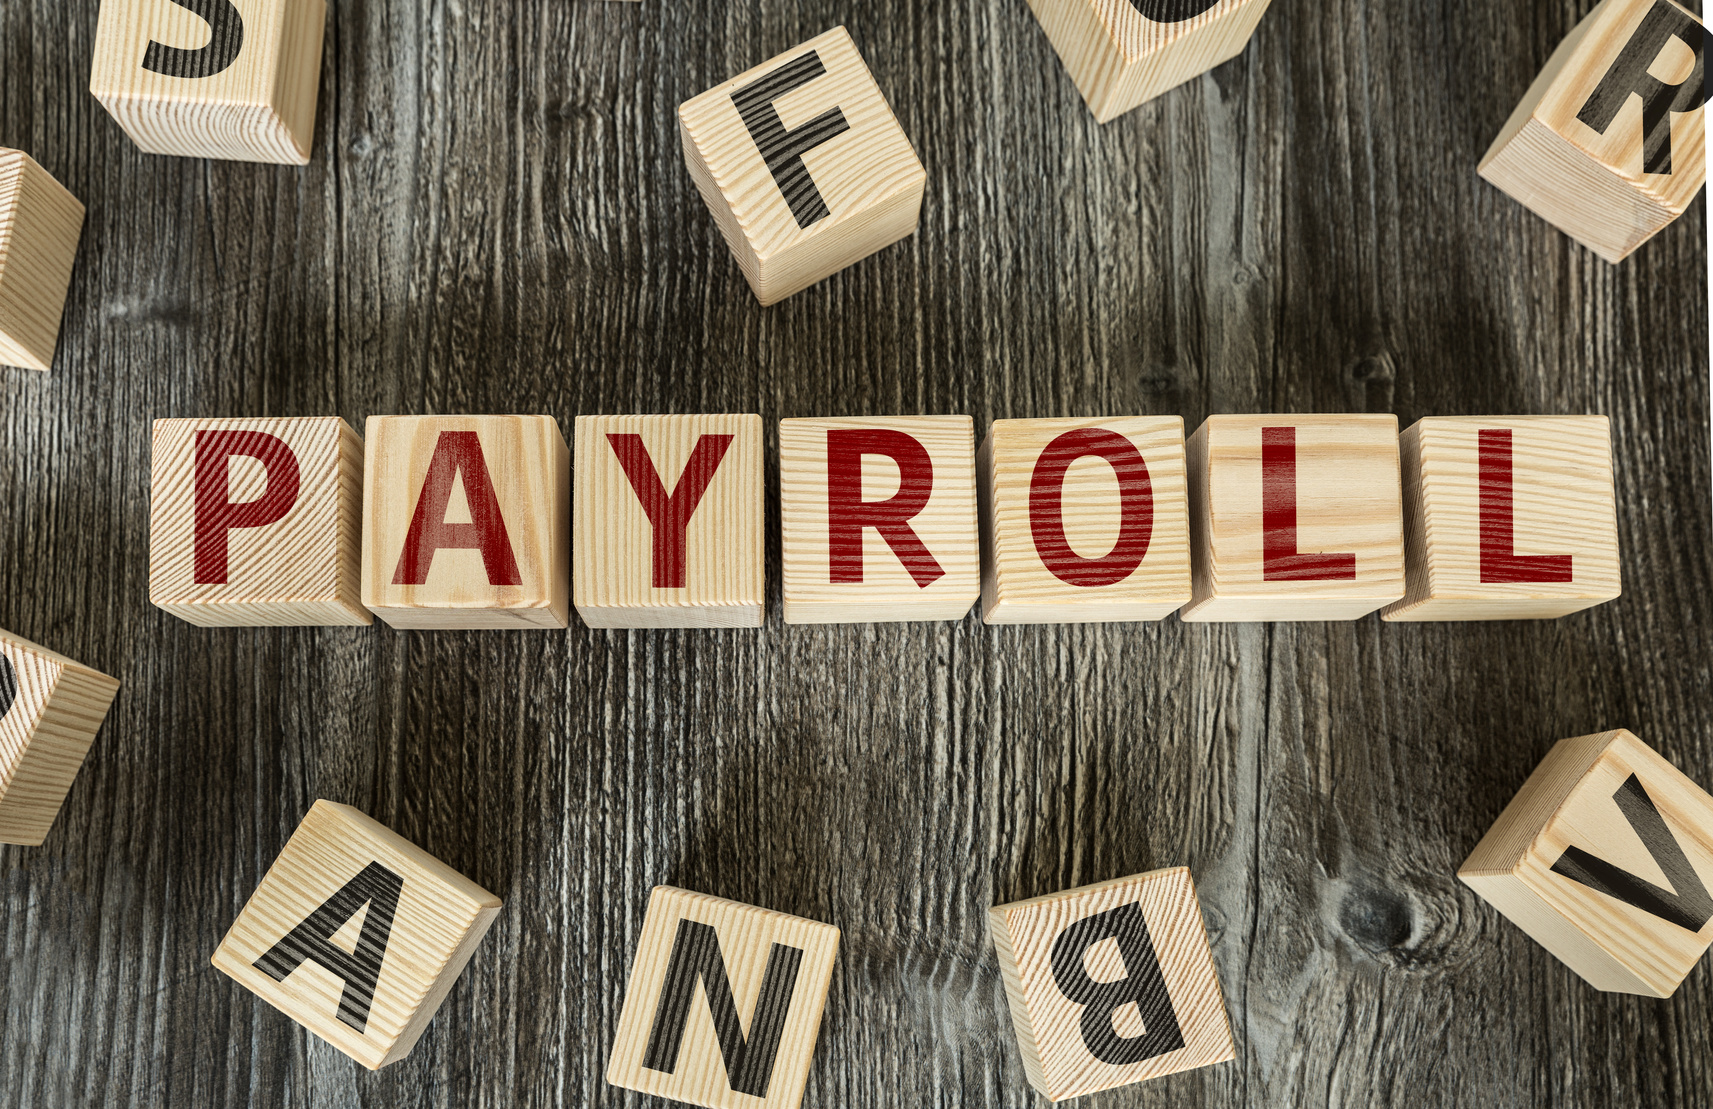 What Should You Do When Spotting Payroll Fraud with Your Payroll Services?